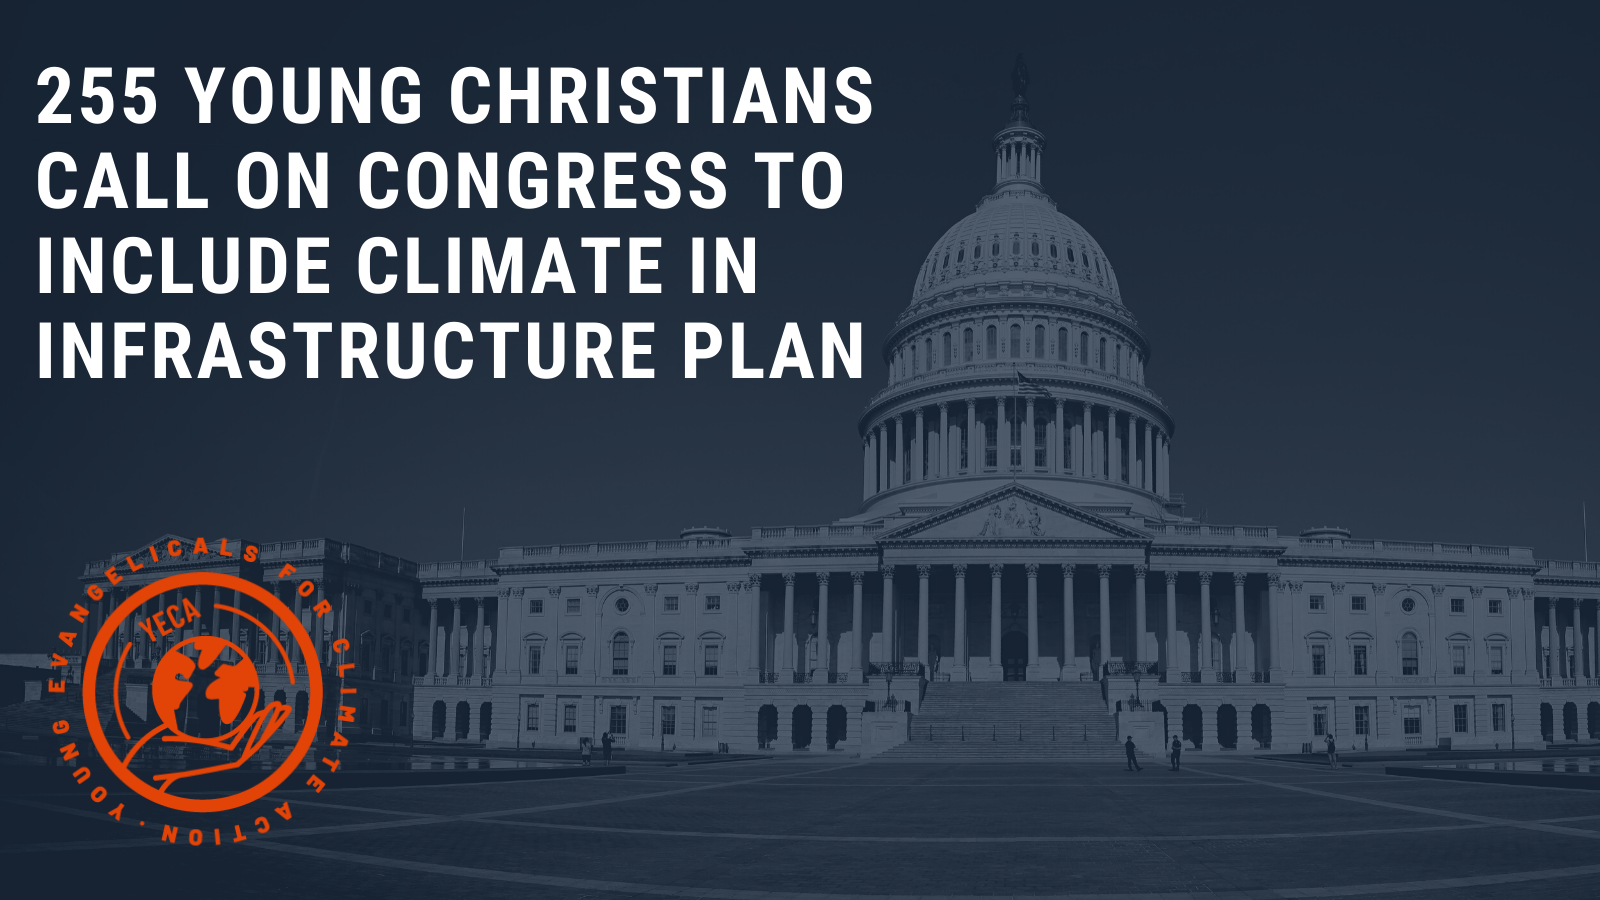 255 Young Christians Call on Congress to Include Clean Energy and Climate Justice in Infrastructure Package